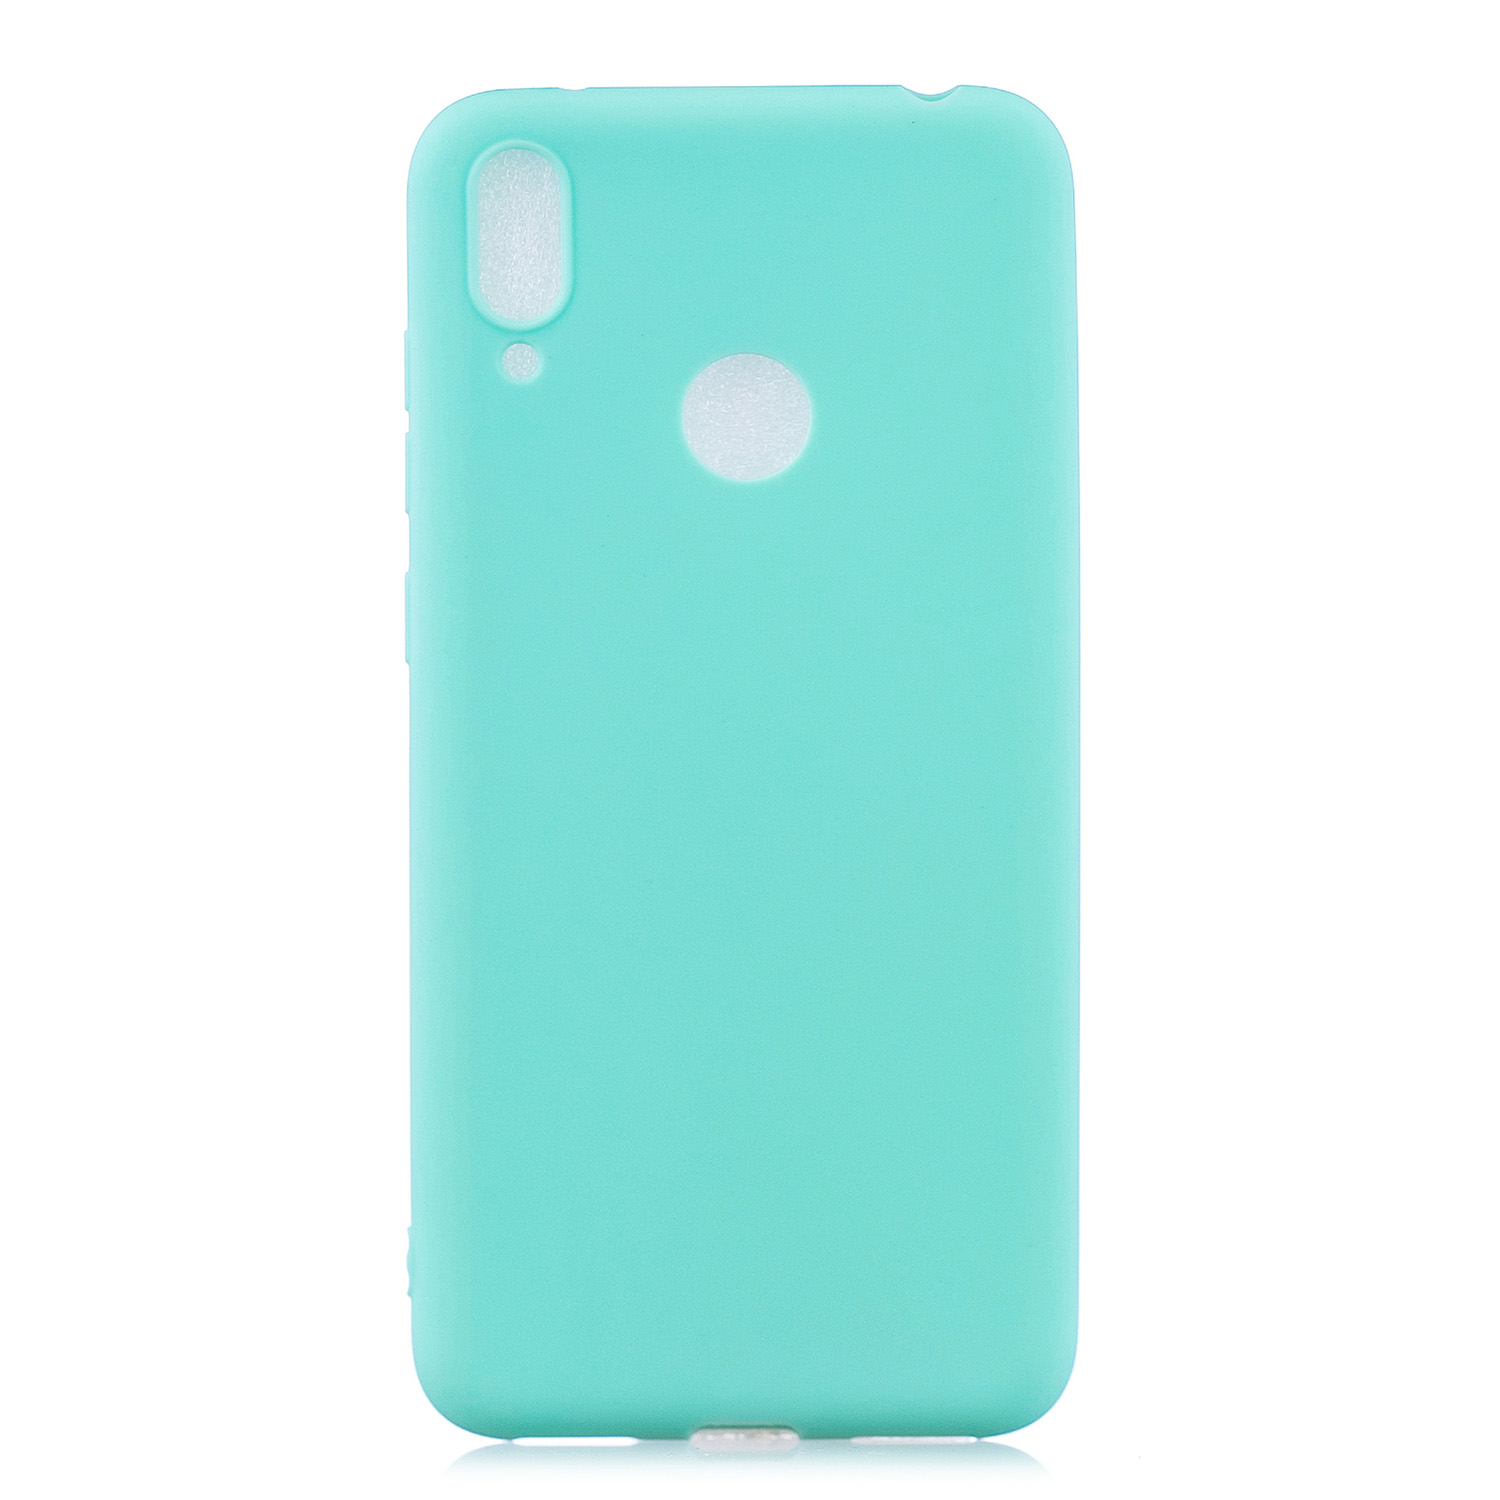 For HUAWEI Y7 2019 Lovely Candy Color Matte TPU Anti-scratch Non-slip Protective Cover Back Case Light blue